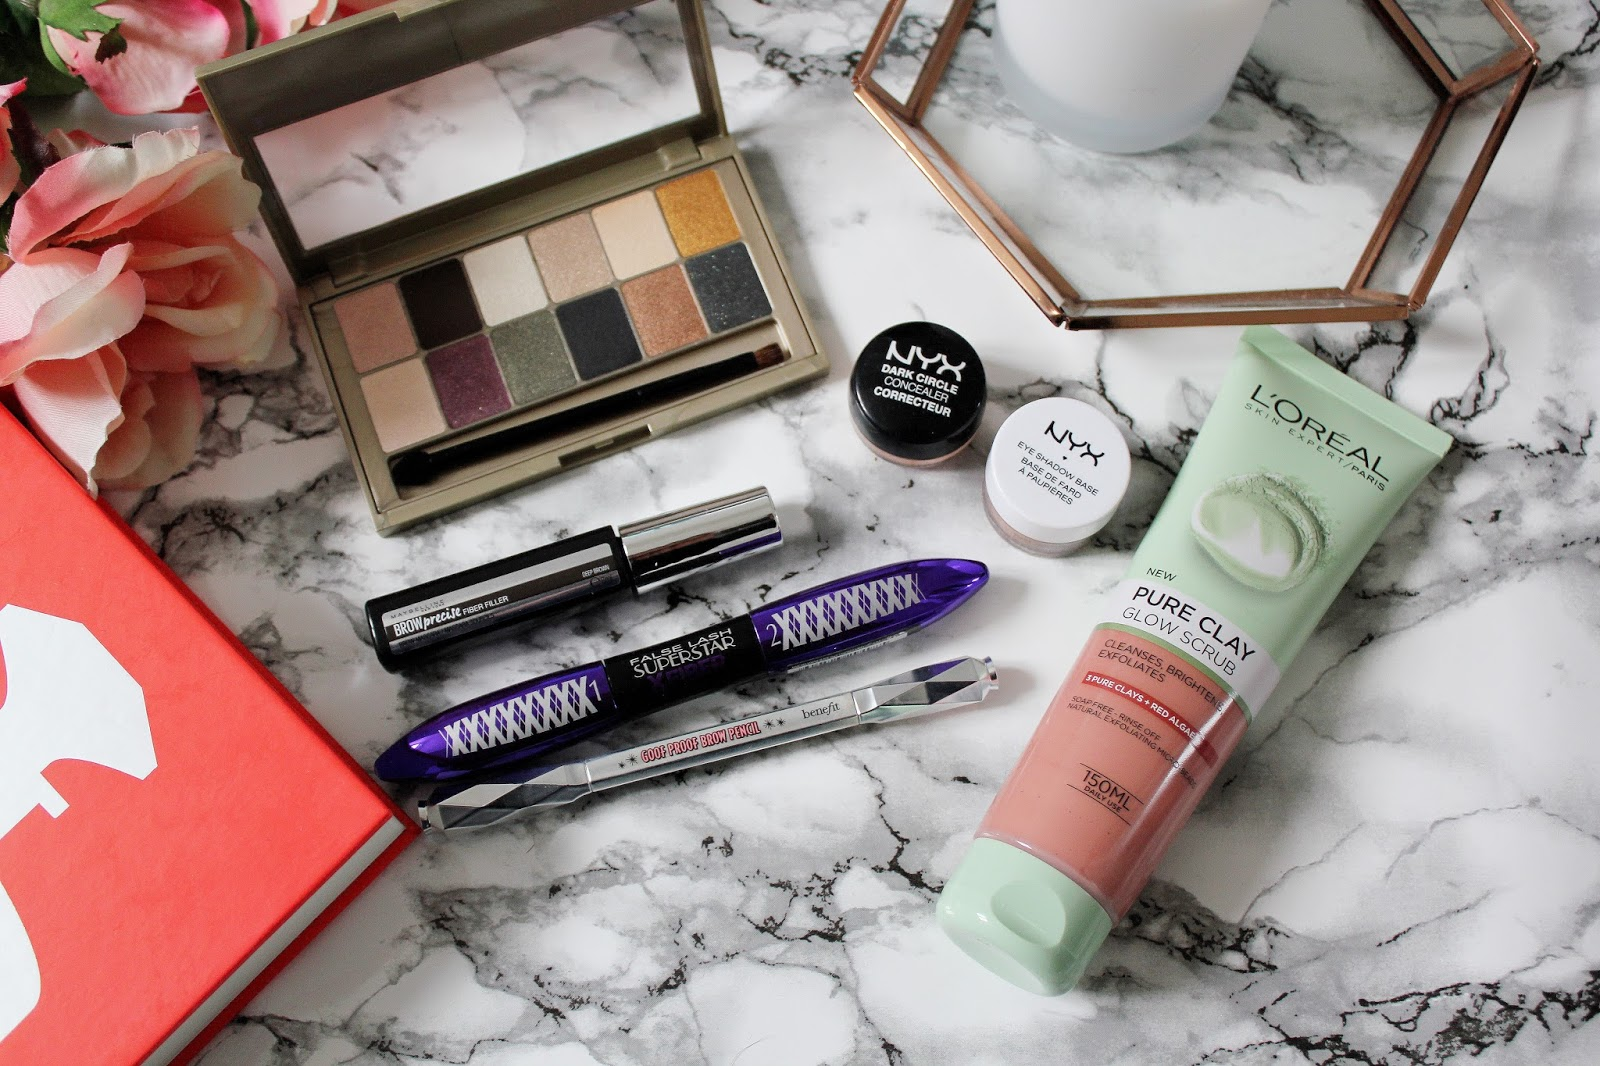 7e563d4c09b January has been a month full of great make-up products and I've discovered  some great products this month. The drugstore is killing it at the moment  and ...